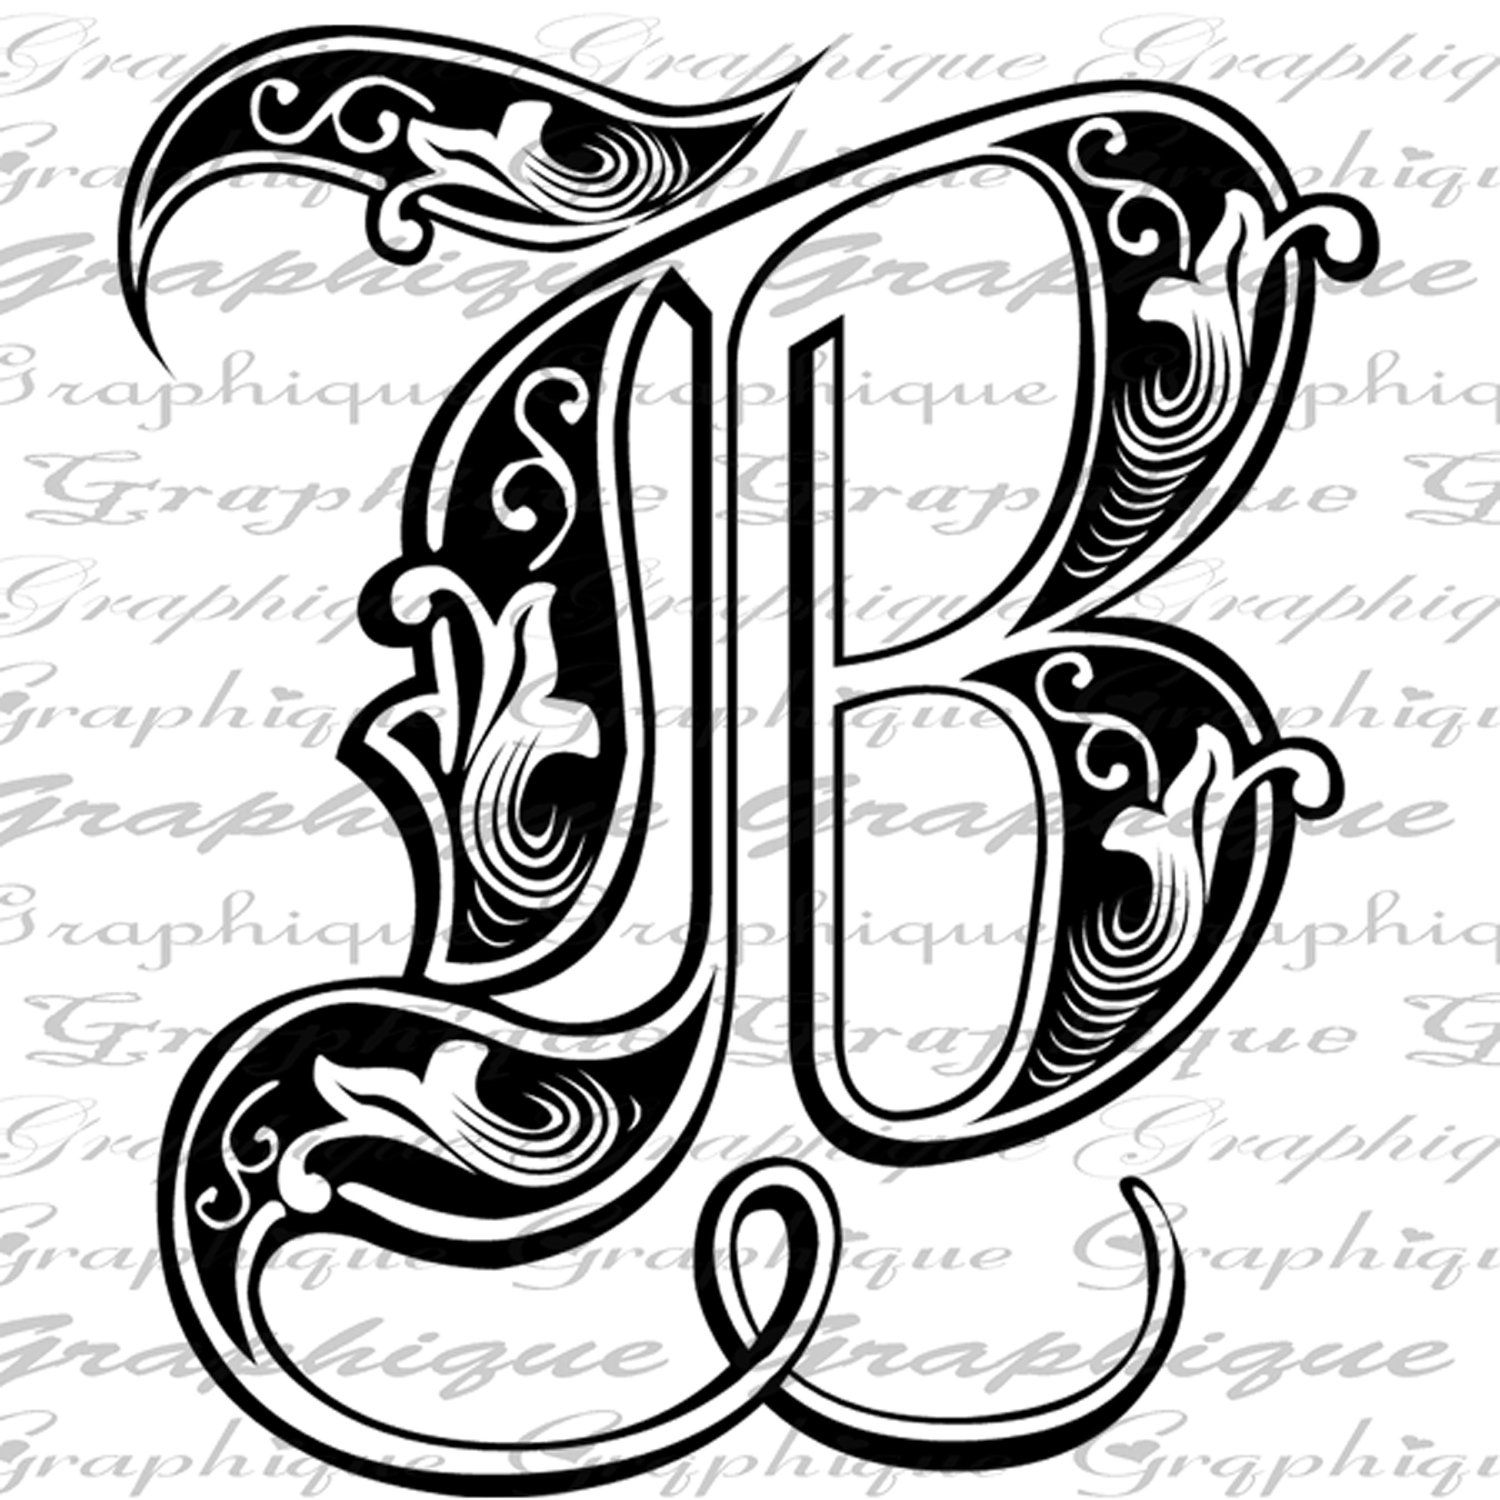 Letter Initial L Monogram Old Engraving Style Type By Graphique